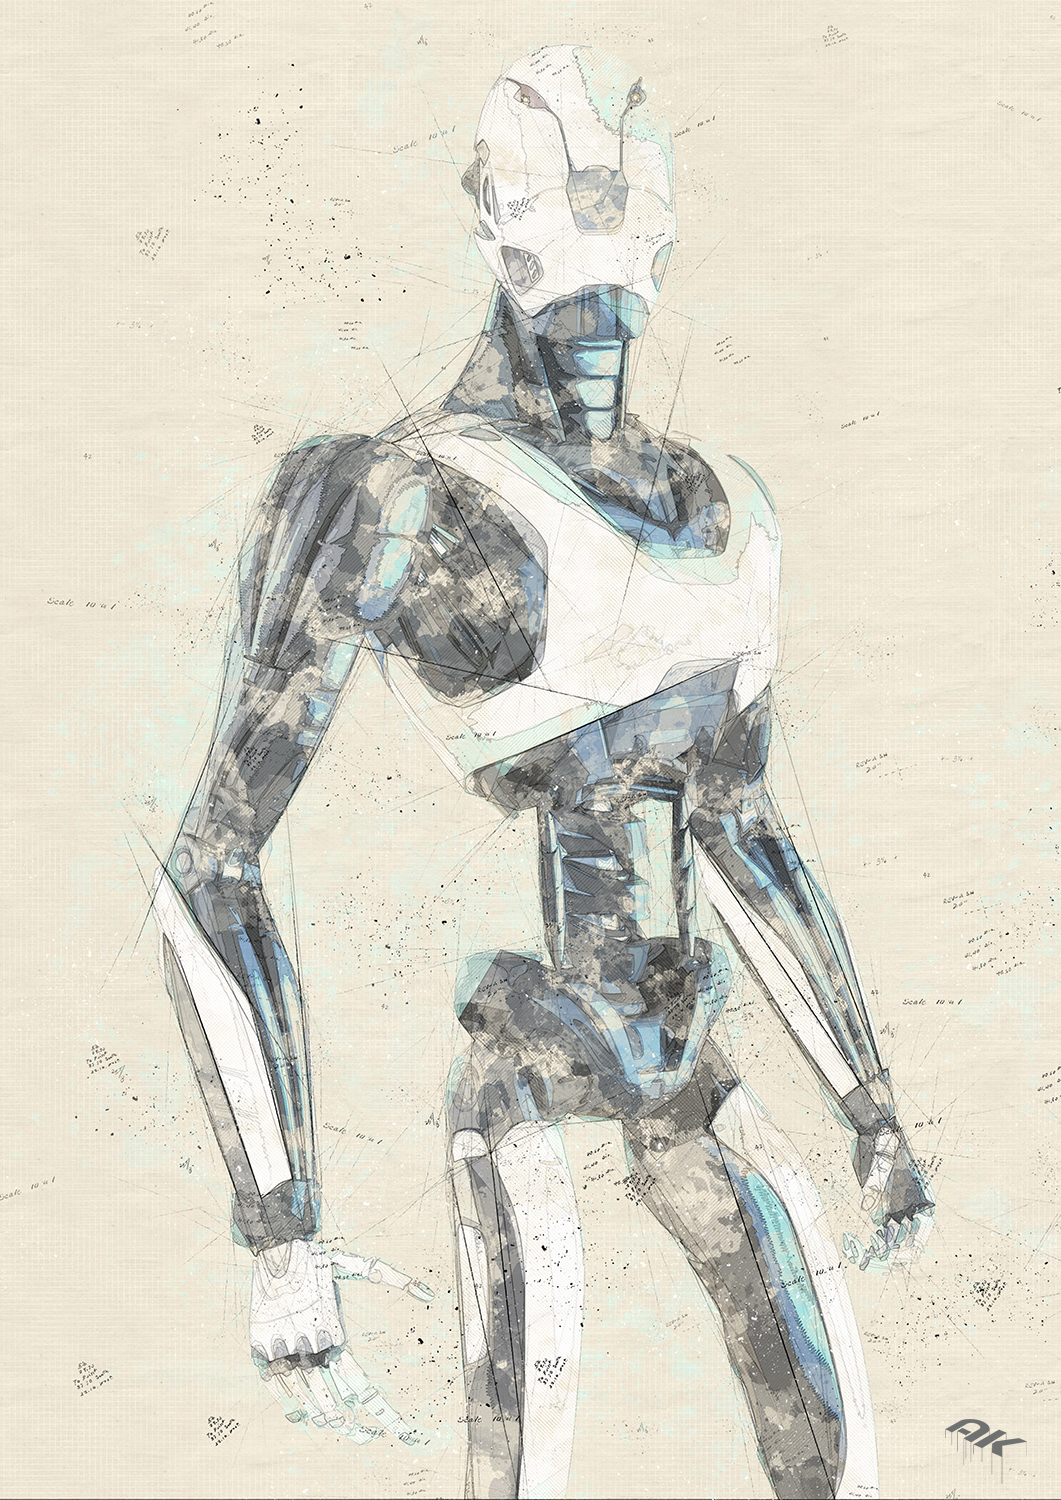 cyborg-robot-drawing-15-copyright-andrew-knutt